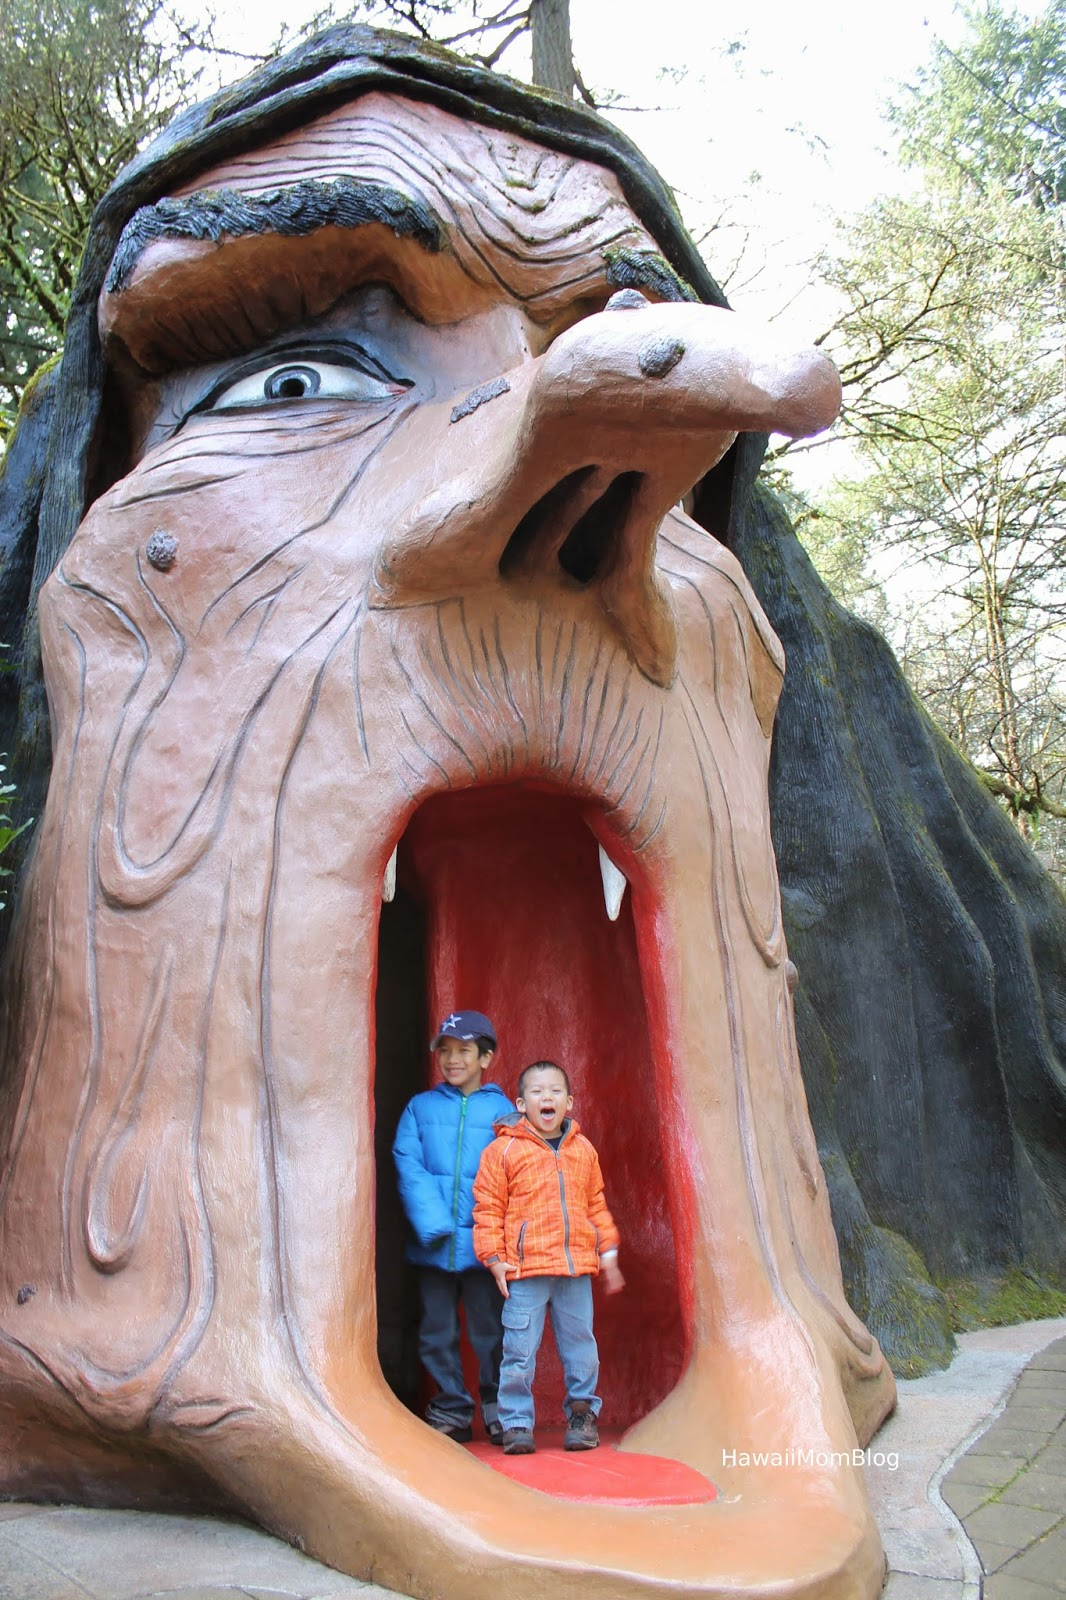 Hawaii Mom Blog Visit Portland Top Things To Do With Kids - 10 things to see and do in portland